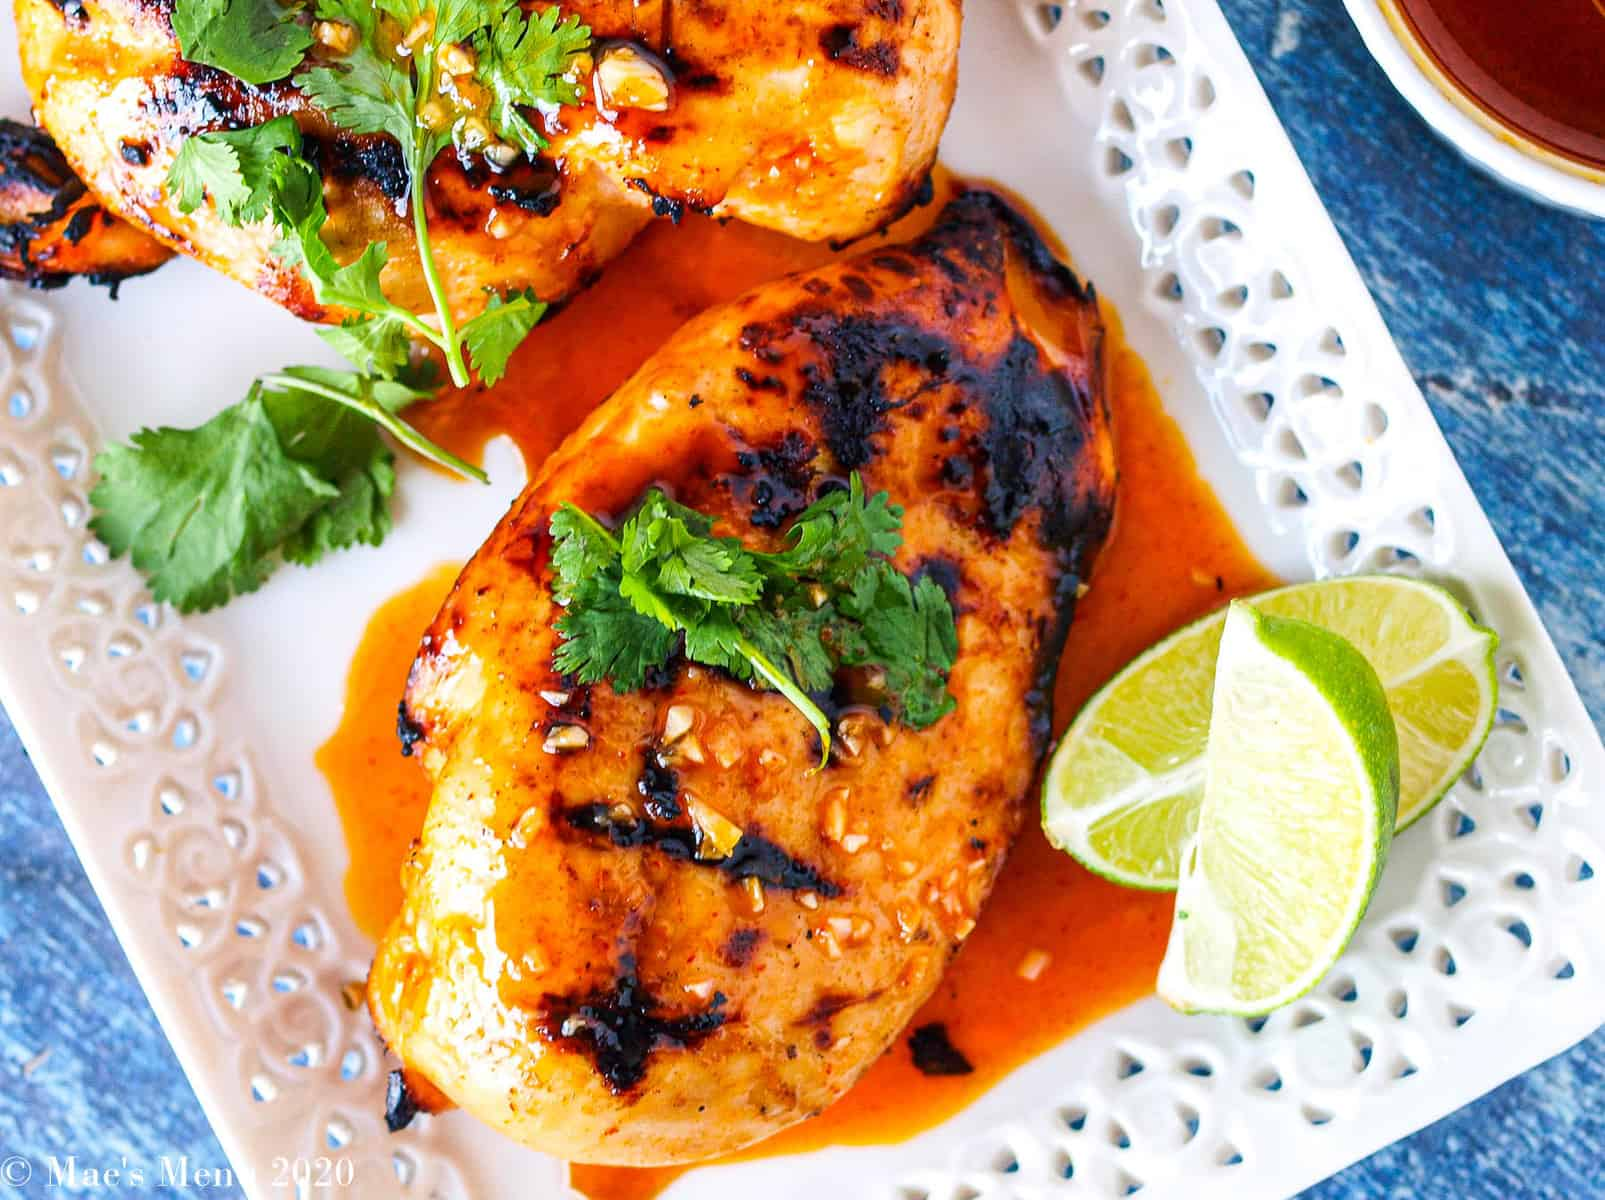 An overhead shot of a grilled chicken breast in the honey spicy chicken marinade.